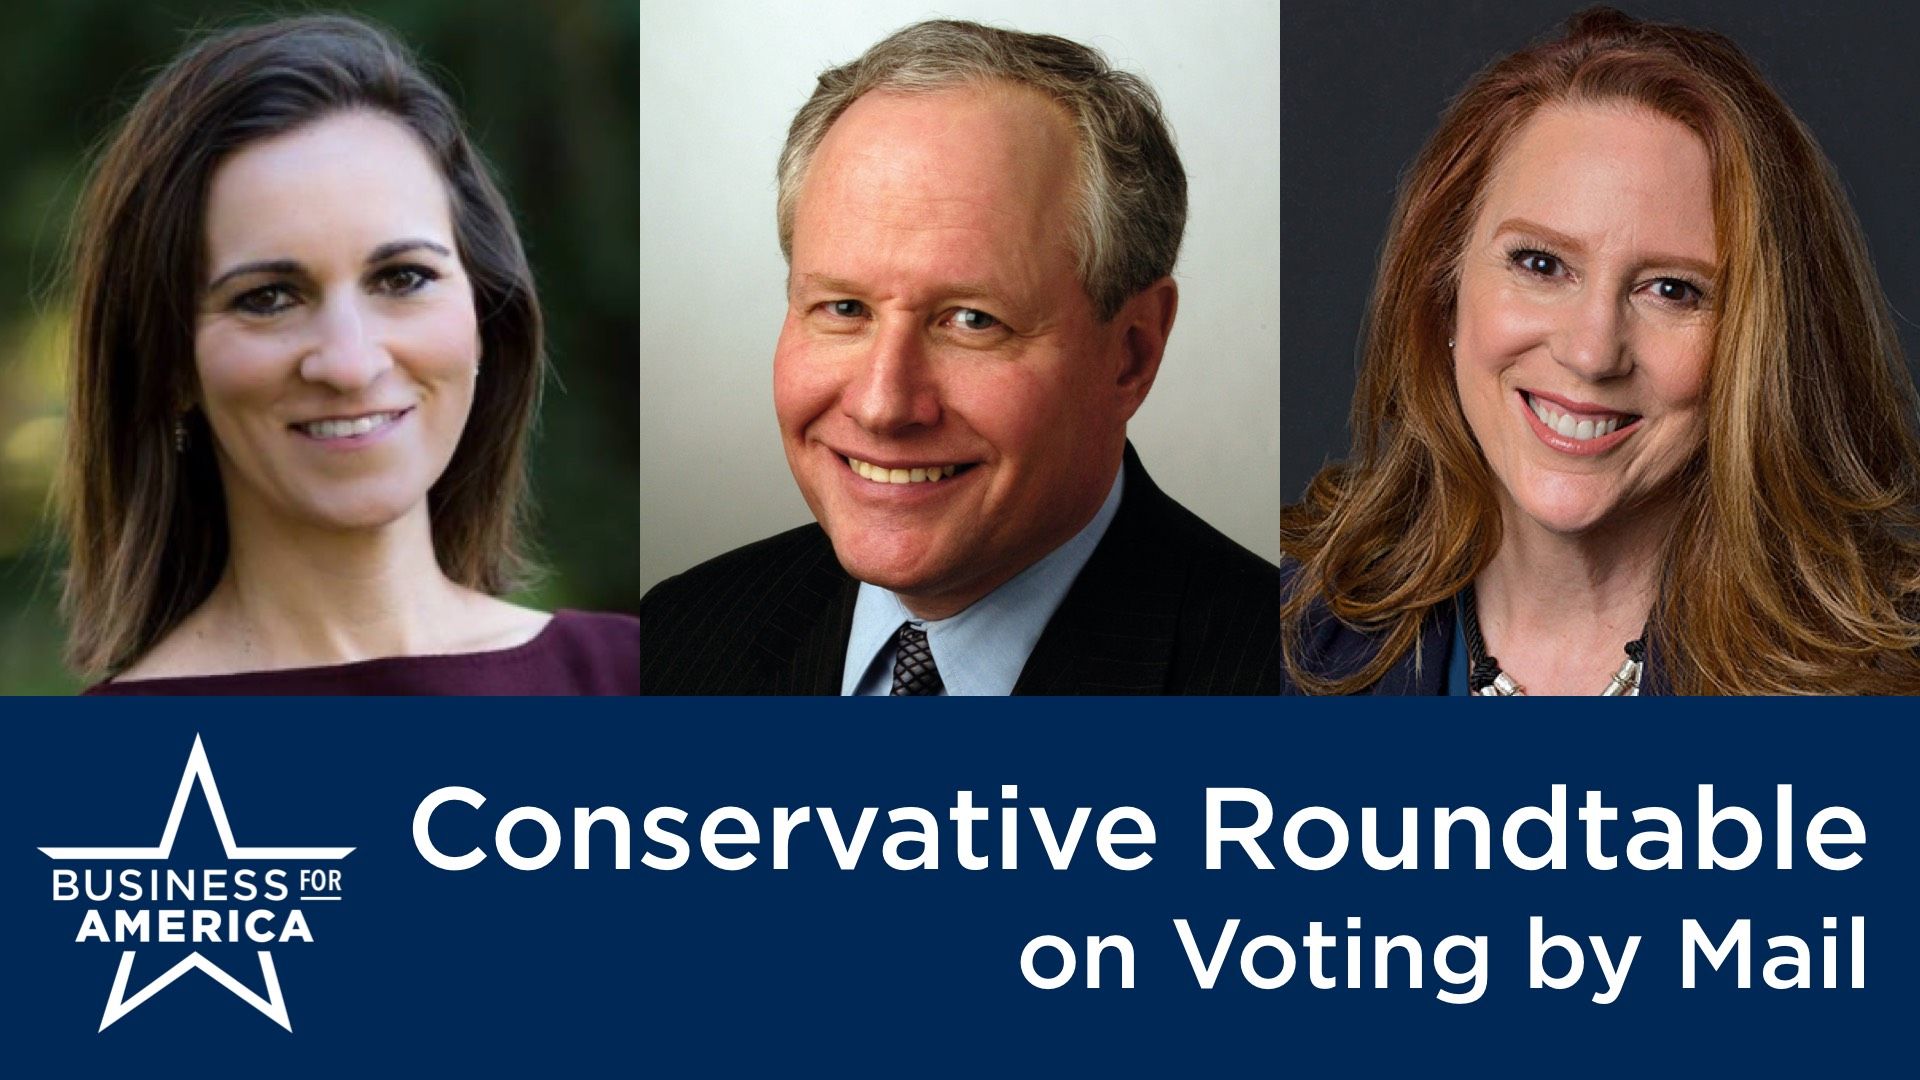 What Do Conservatives Really Think About Vote-by-Mail? Bill Kristol, Kim Wyman & Mindy Finn